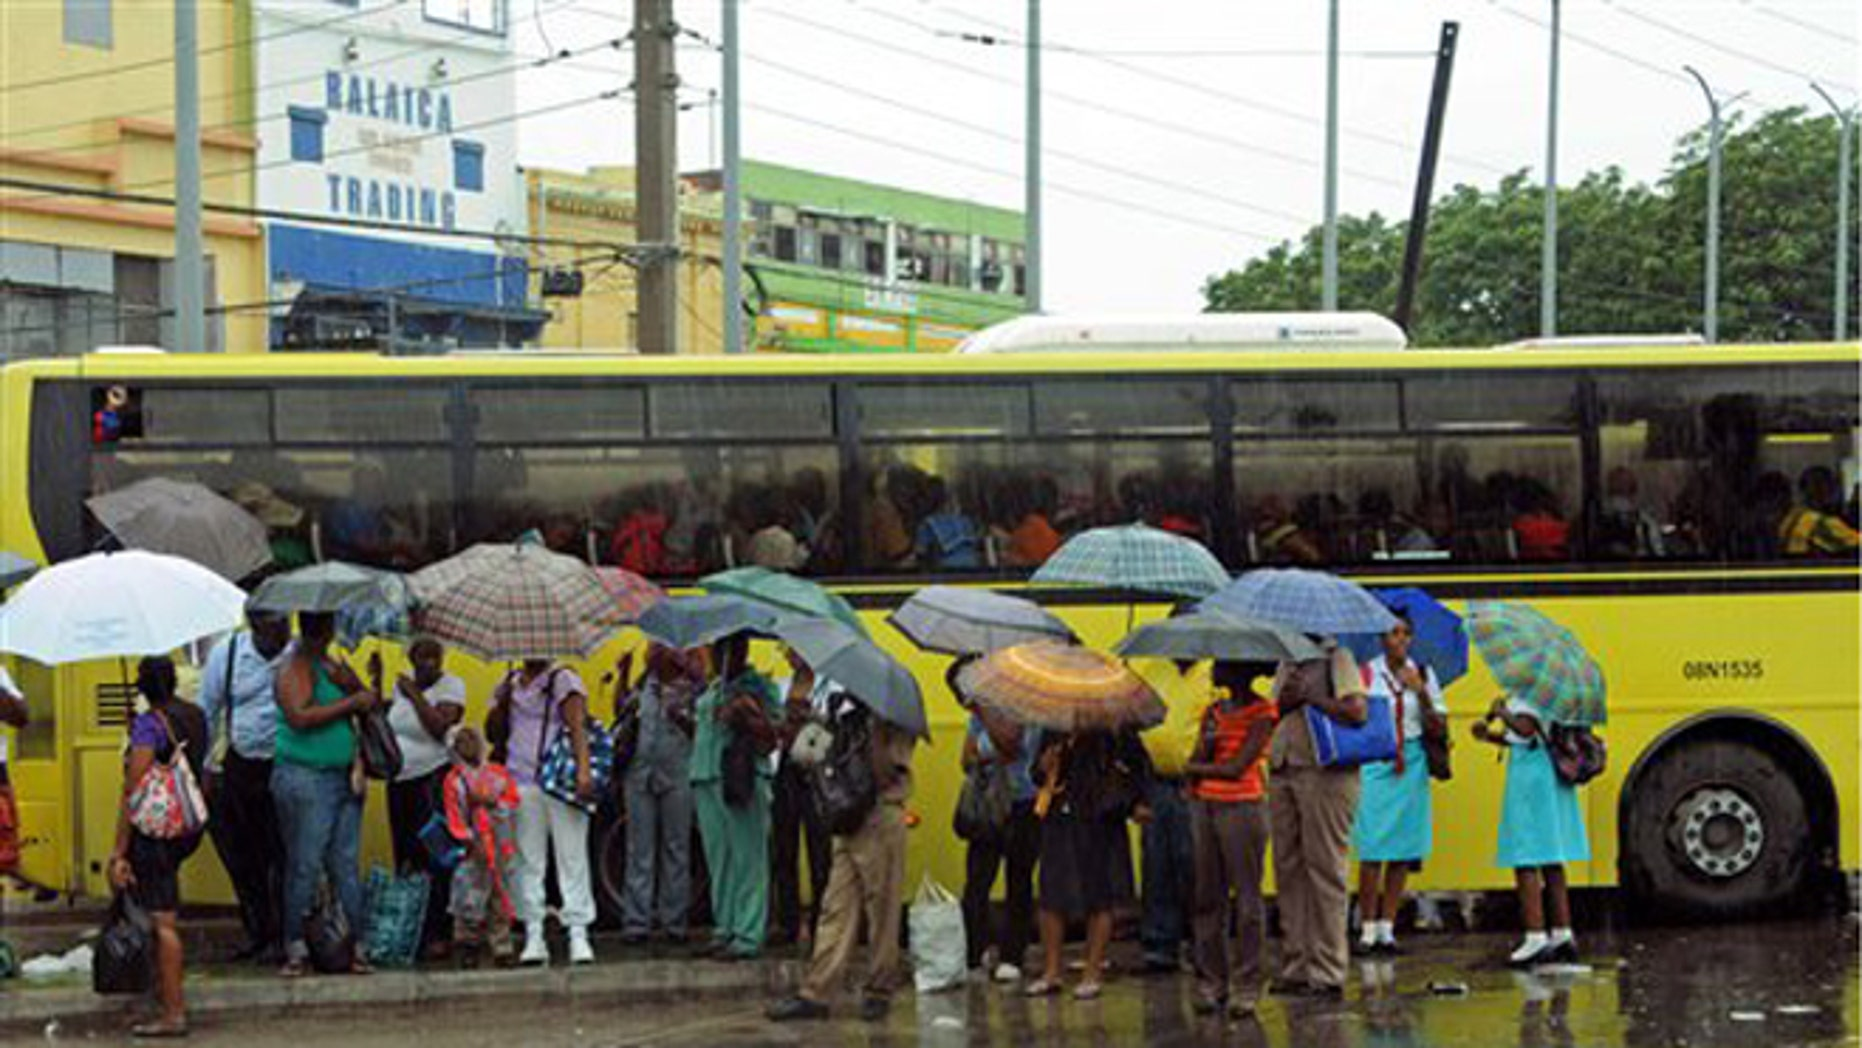 Commuters wait at a bus stop as rain brought by the outer bands of Tropical Storm Sandy falls in Kingston, Jamaica, Tuesday, Oct. 23, 2012. The U.S. National Hurricane Center in Miami said Sandy was expected to become a hurricane as it nears Jamaica on Wednesday. (AP Photo/Collin Reid)